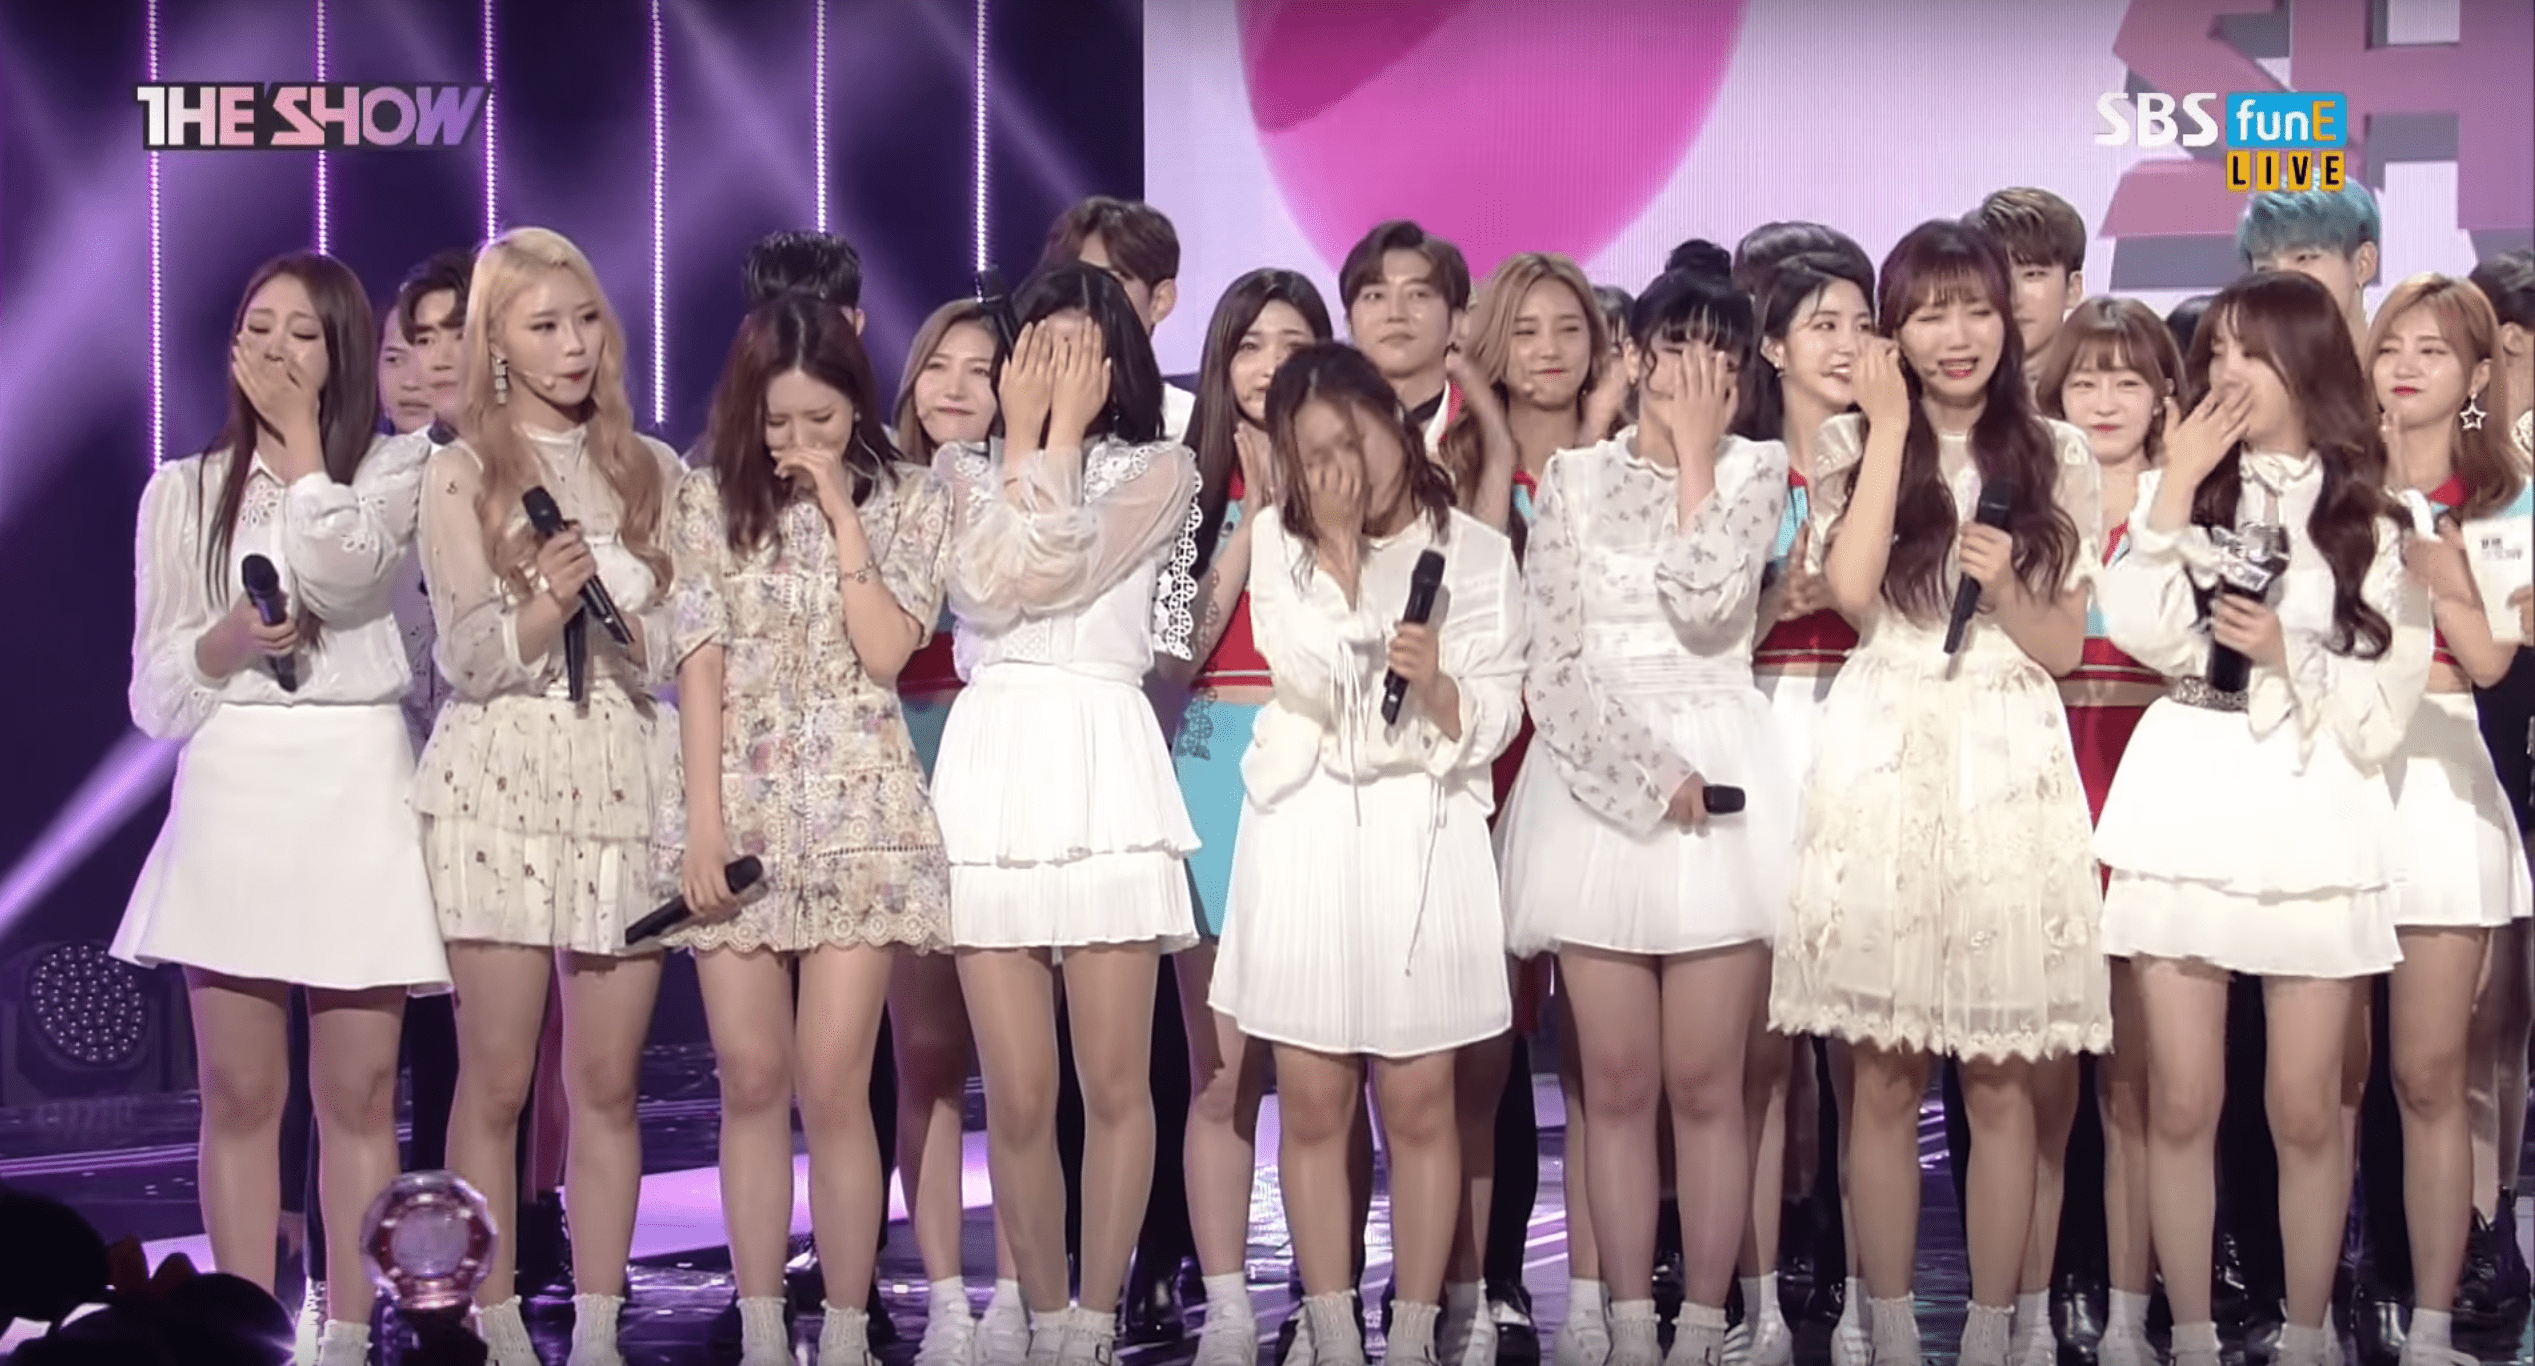 """Watch: Lovelyz Takes Their 1st Ever Win On """"The Show"""" With """"Now, We,"""" Performances By DIA, PRISTIN, LABOUM, And More"""